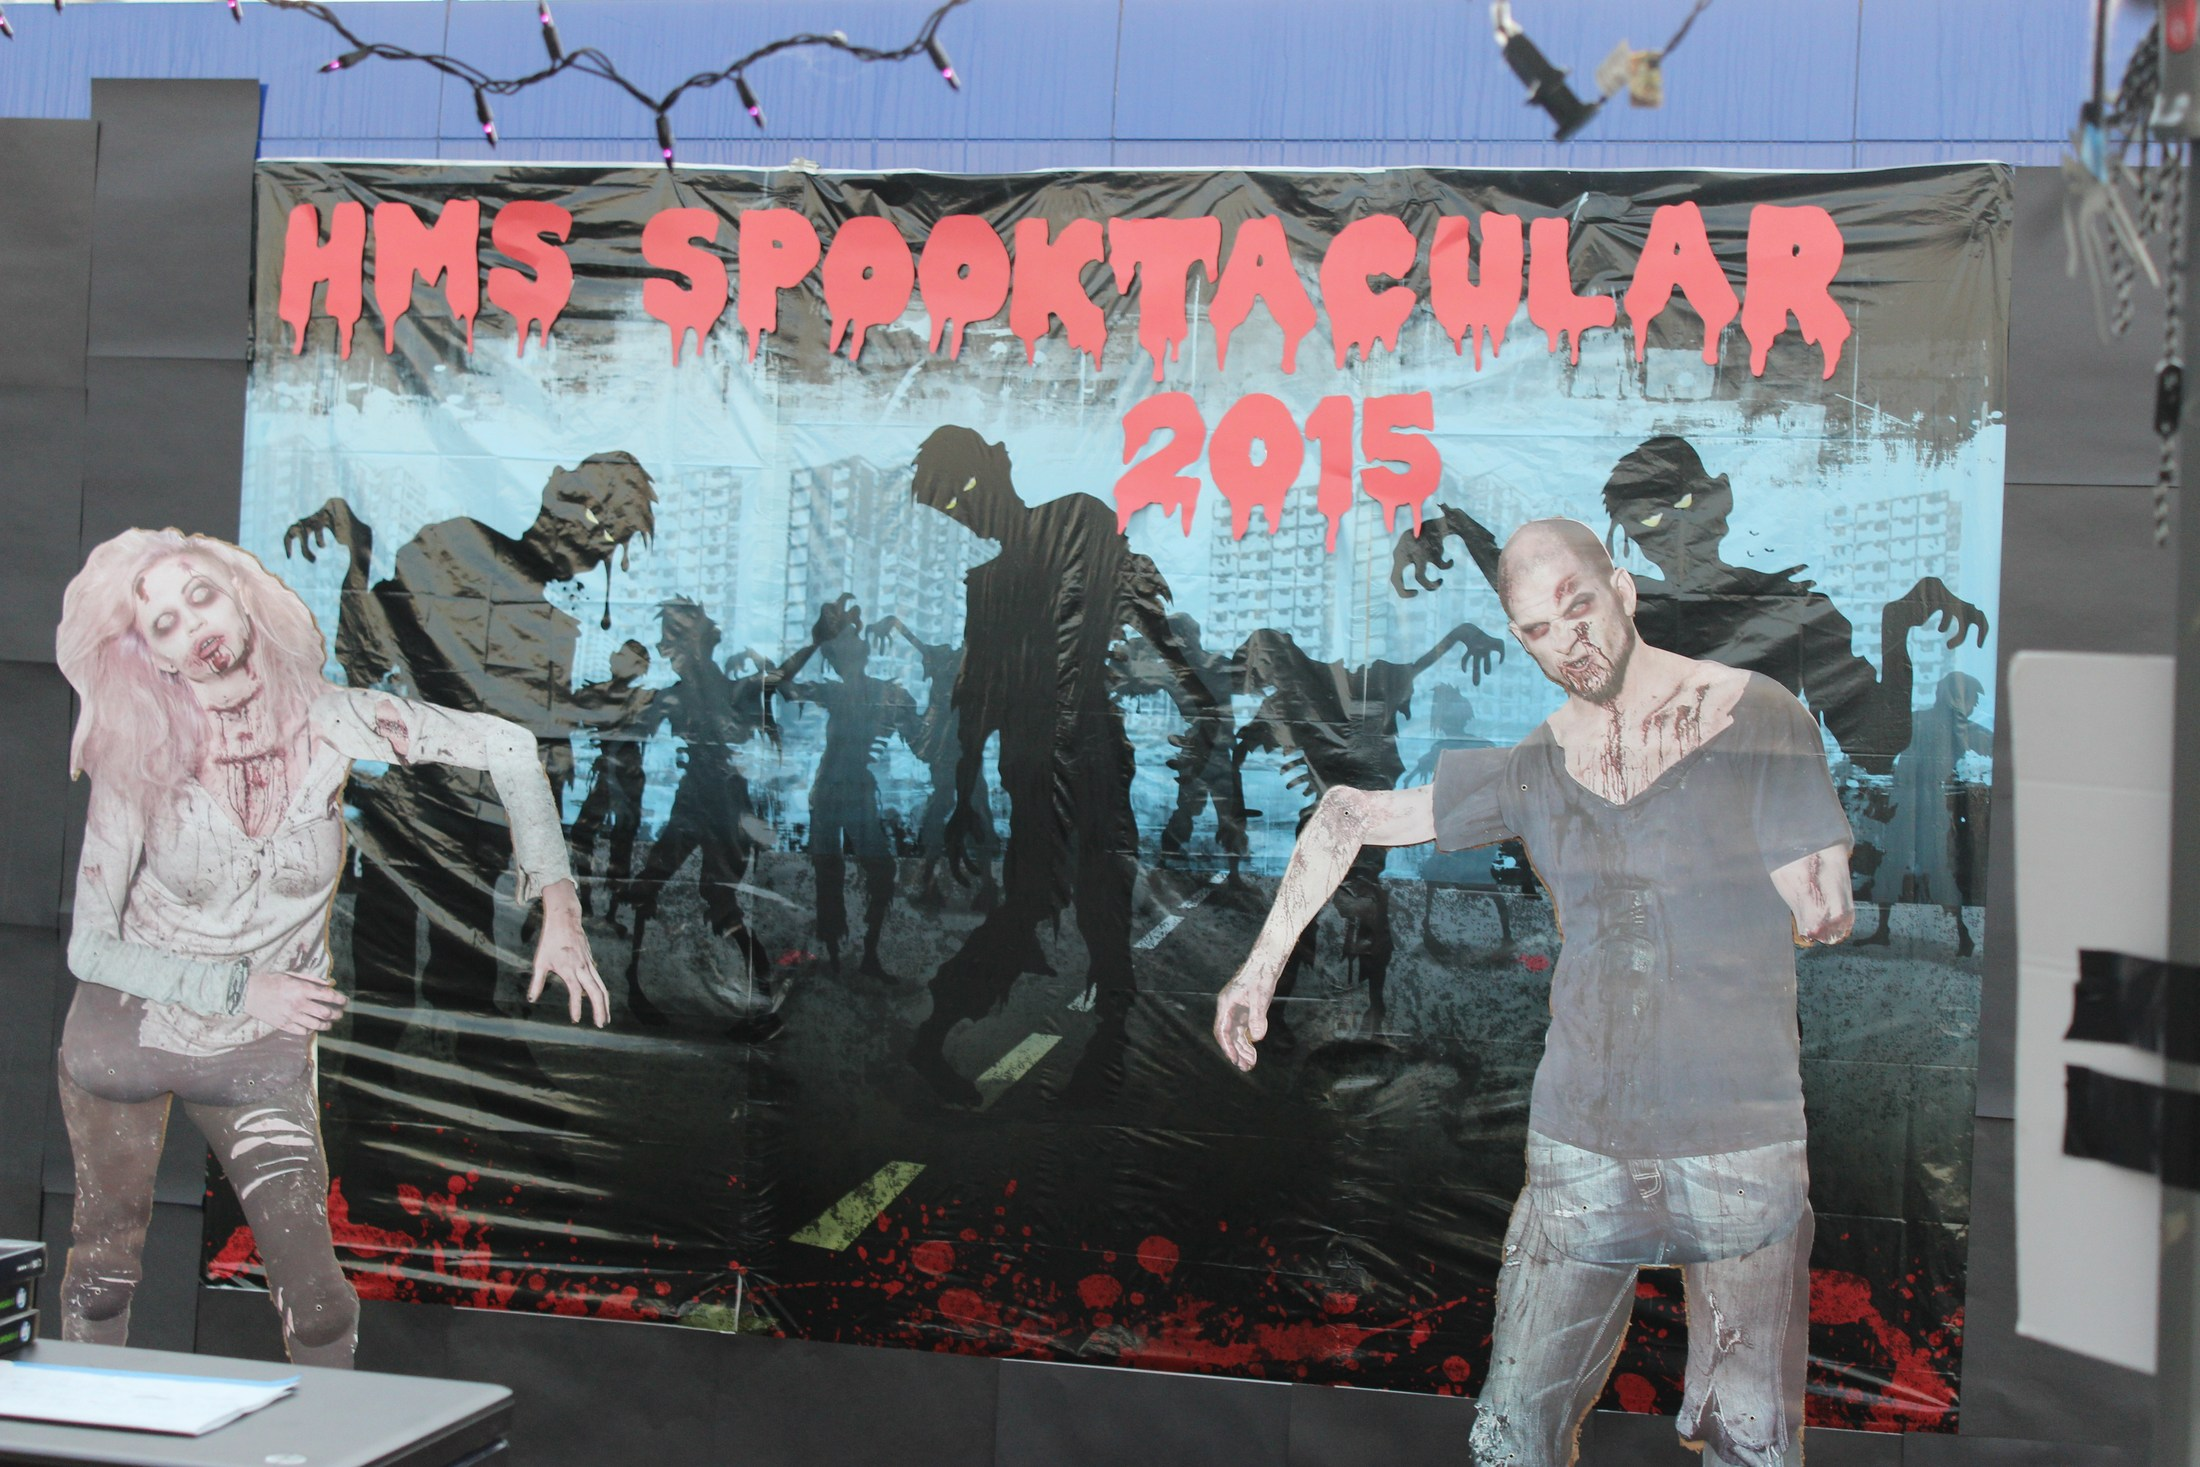 HMS Spooktacular 2015 sign and zombie cut-outs